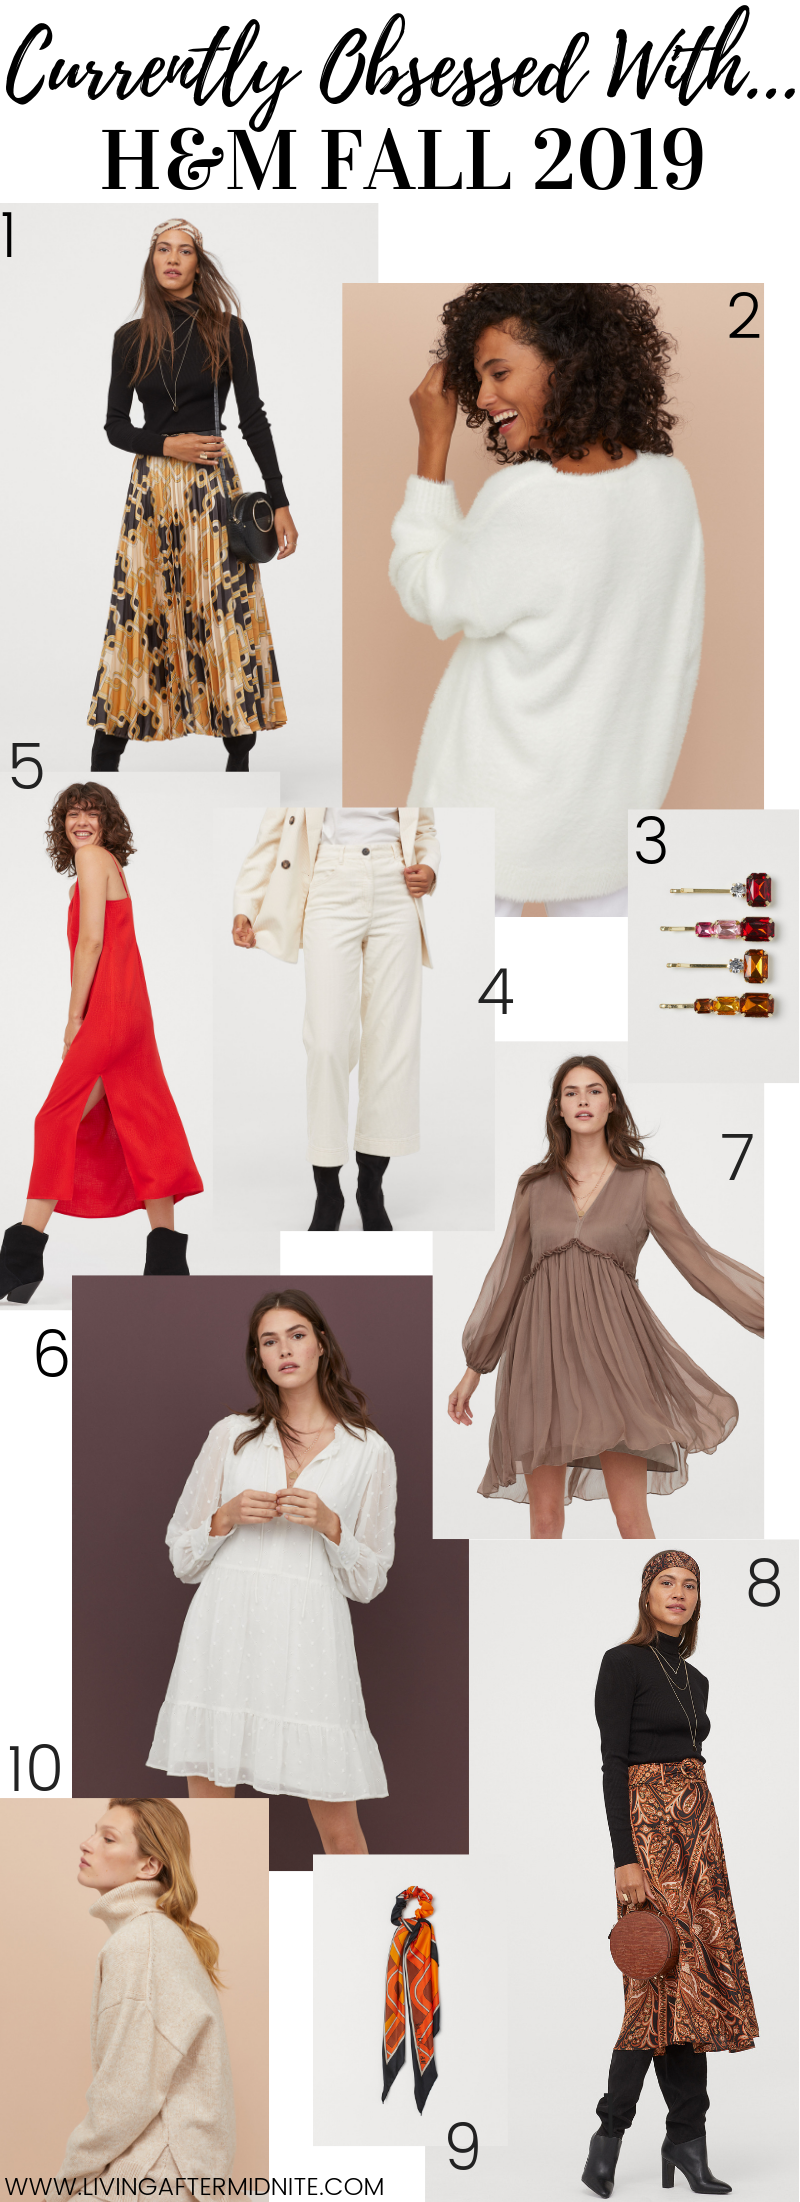 Currently Obsessed With: H&M Fall 2019 New Arrivals | Fall Shopping List | Neutral Fall Wardrobe | H&M Must Haves